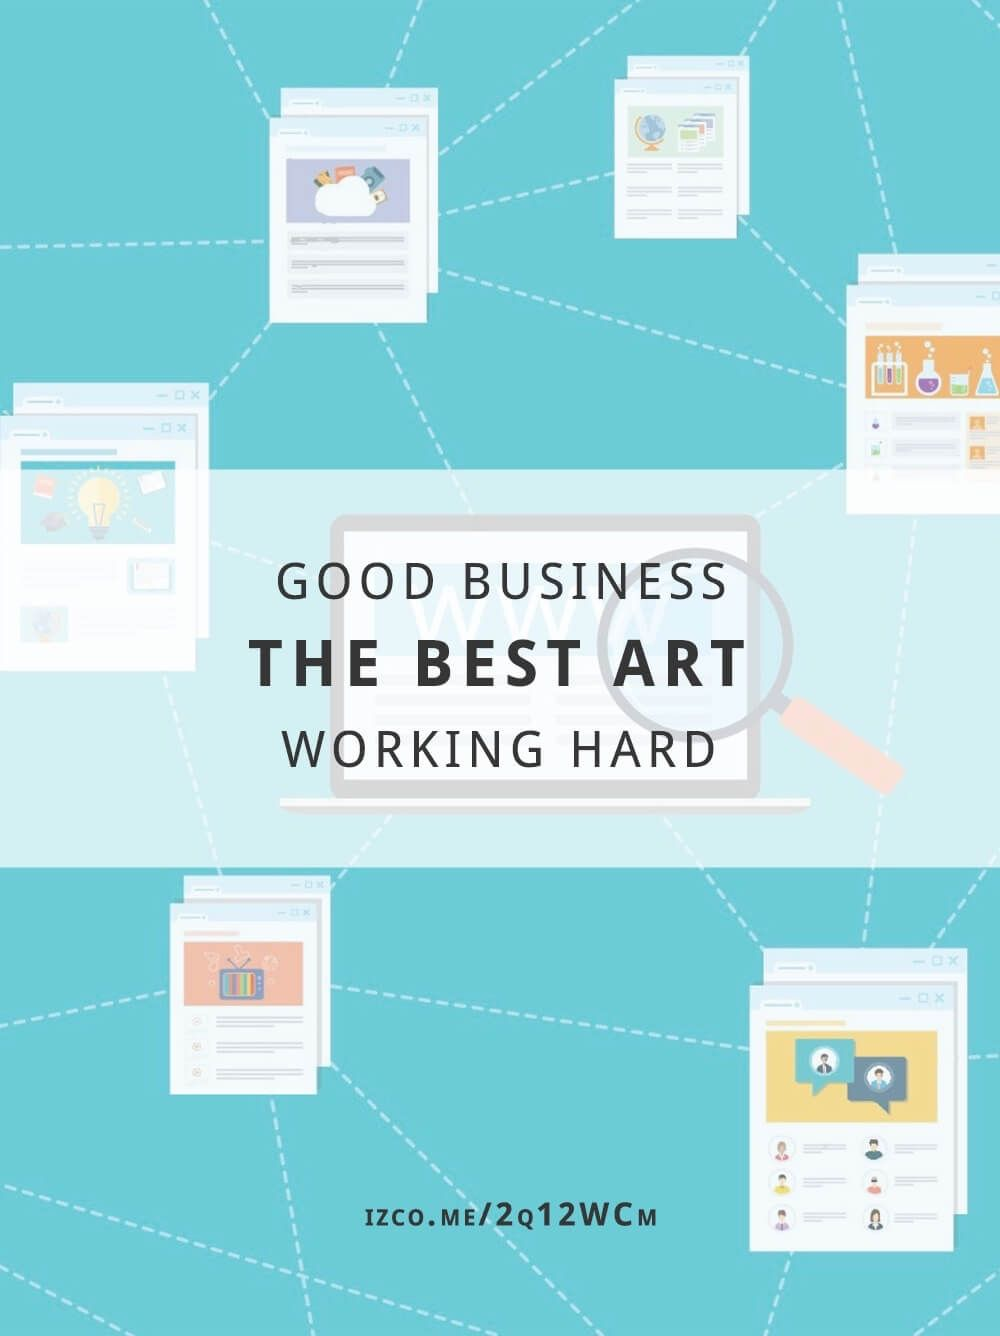 Remember That Good Business Is the Best Art. Being good in business is the most fascinating kind of art. Making money is art and working is art and good business is the best art. -- Andy Warhol.